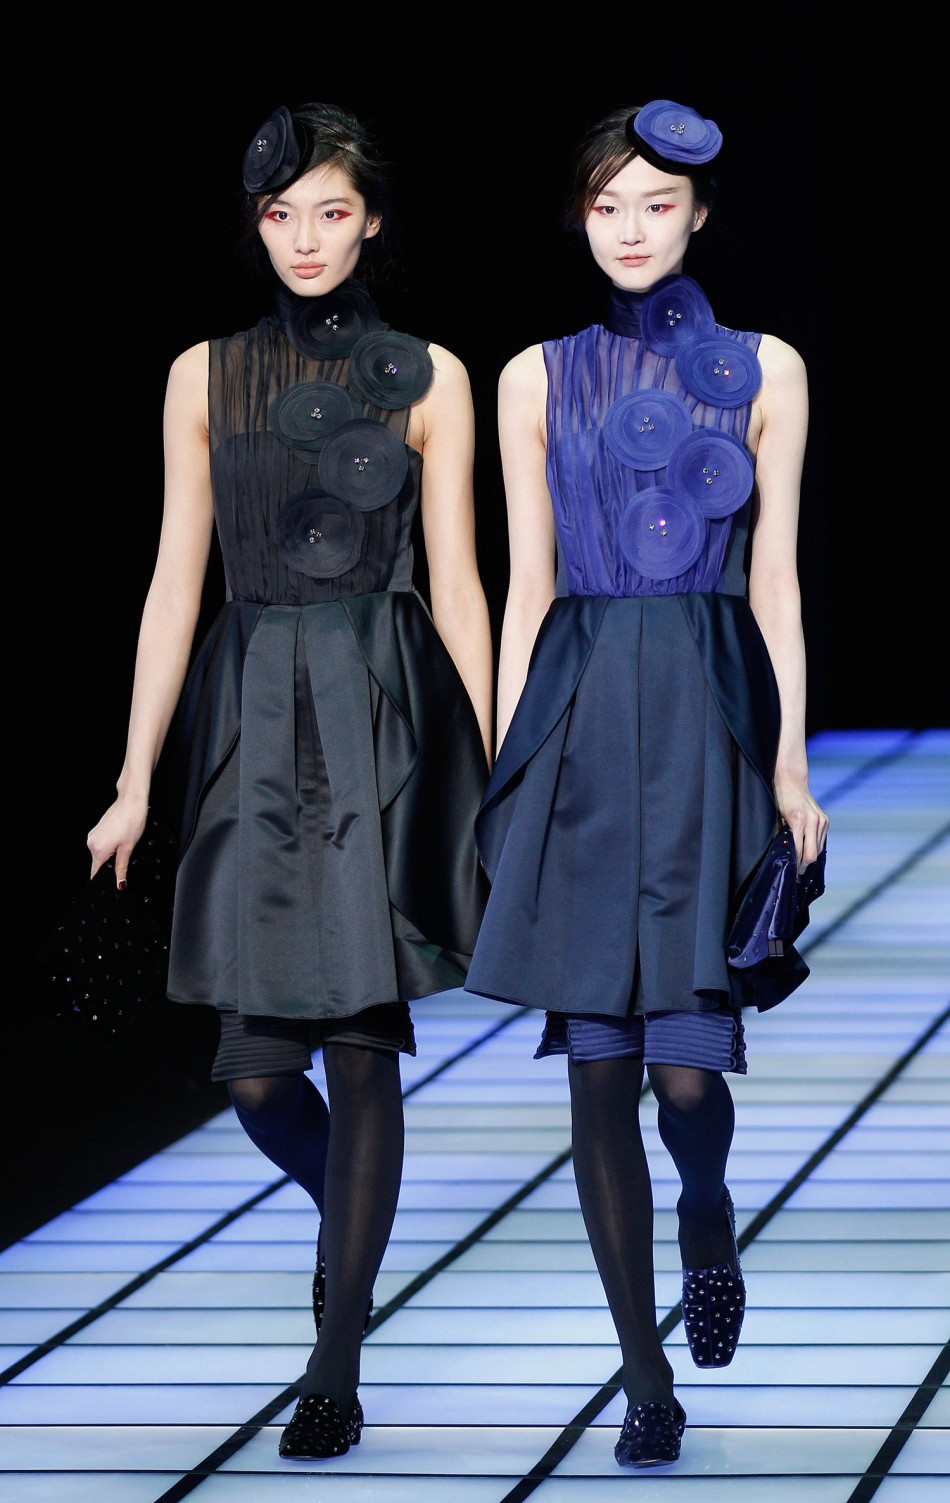 Emporio Armanis Little Winter Follies at 2012 Milan Fashion Week